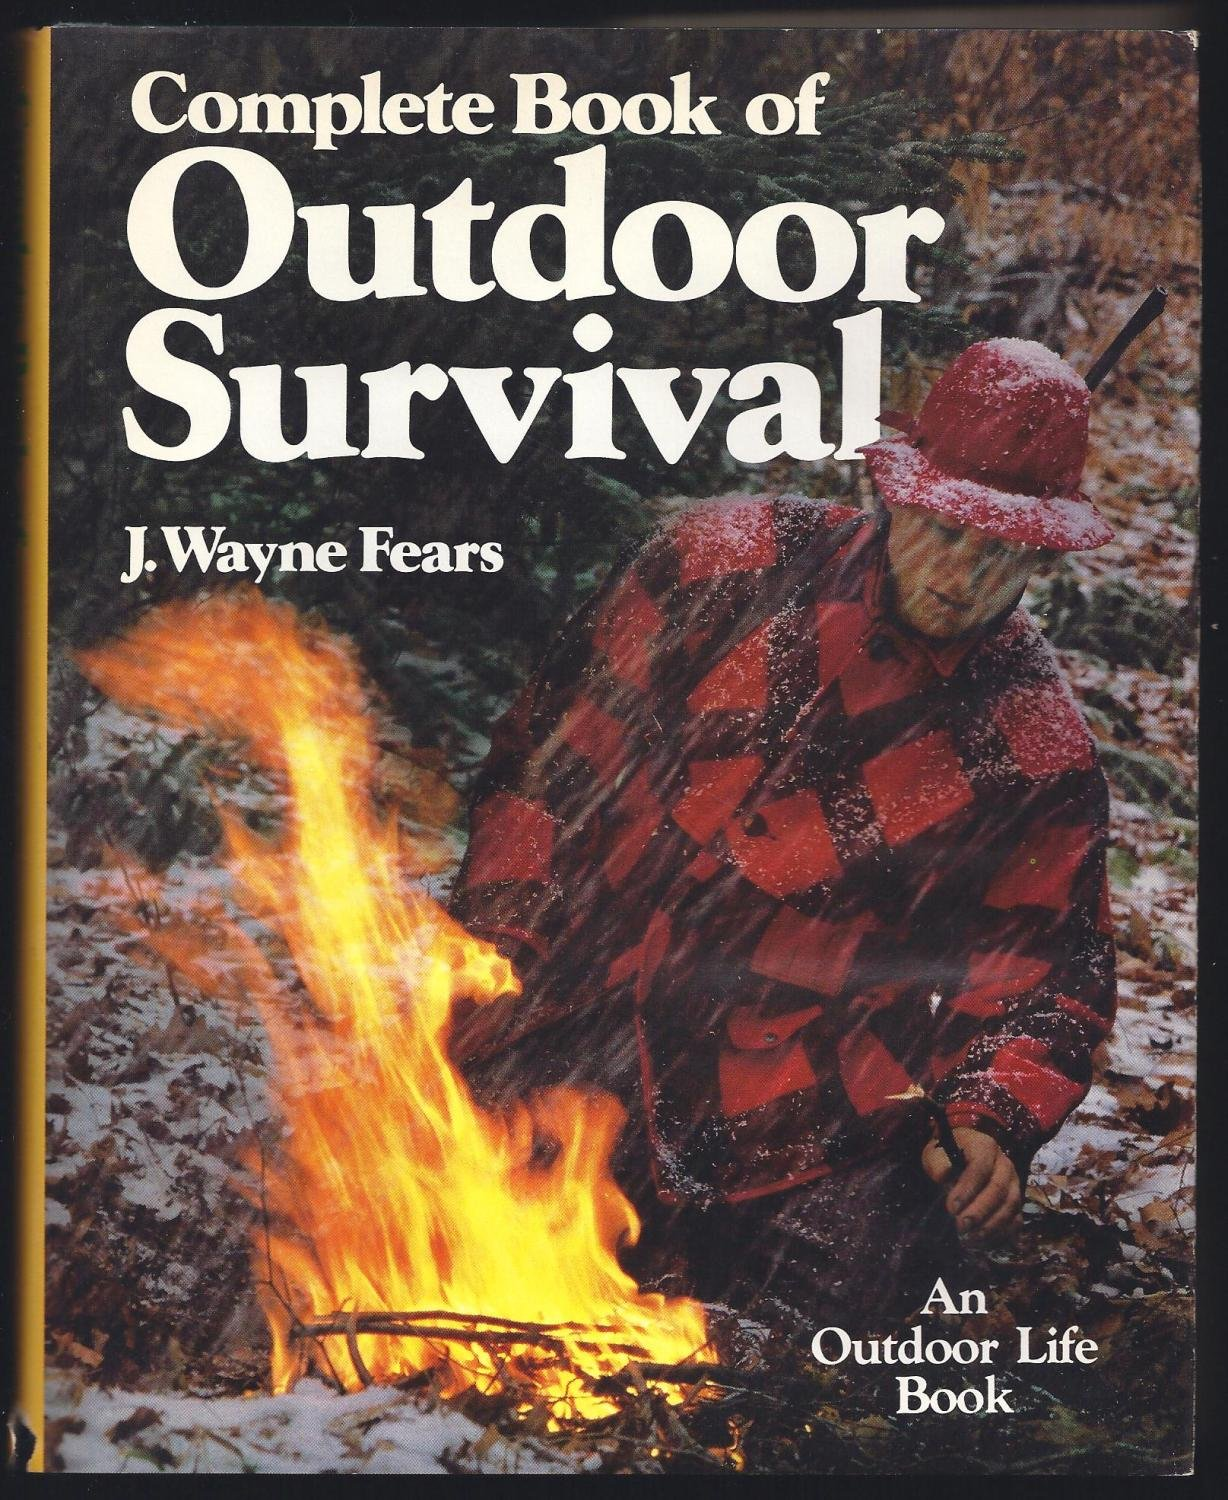 Image OfComplete Book Of Outdoor Survival